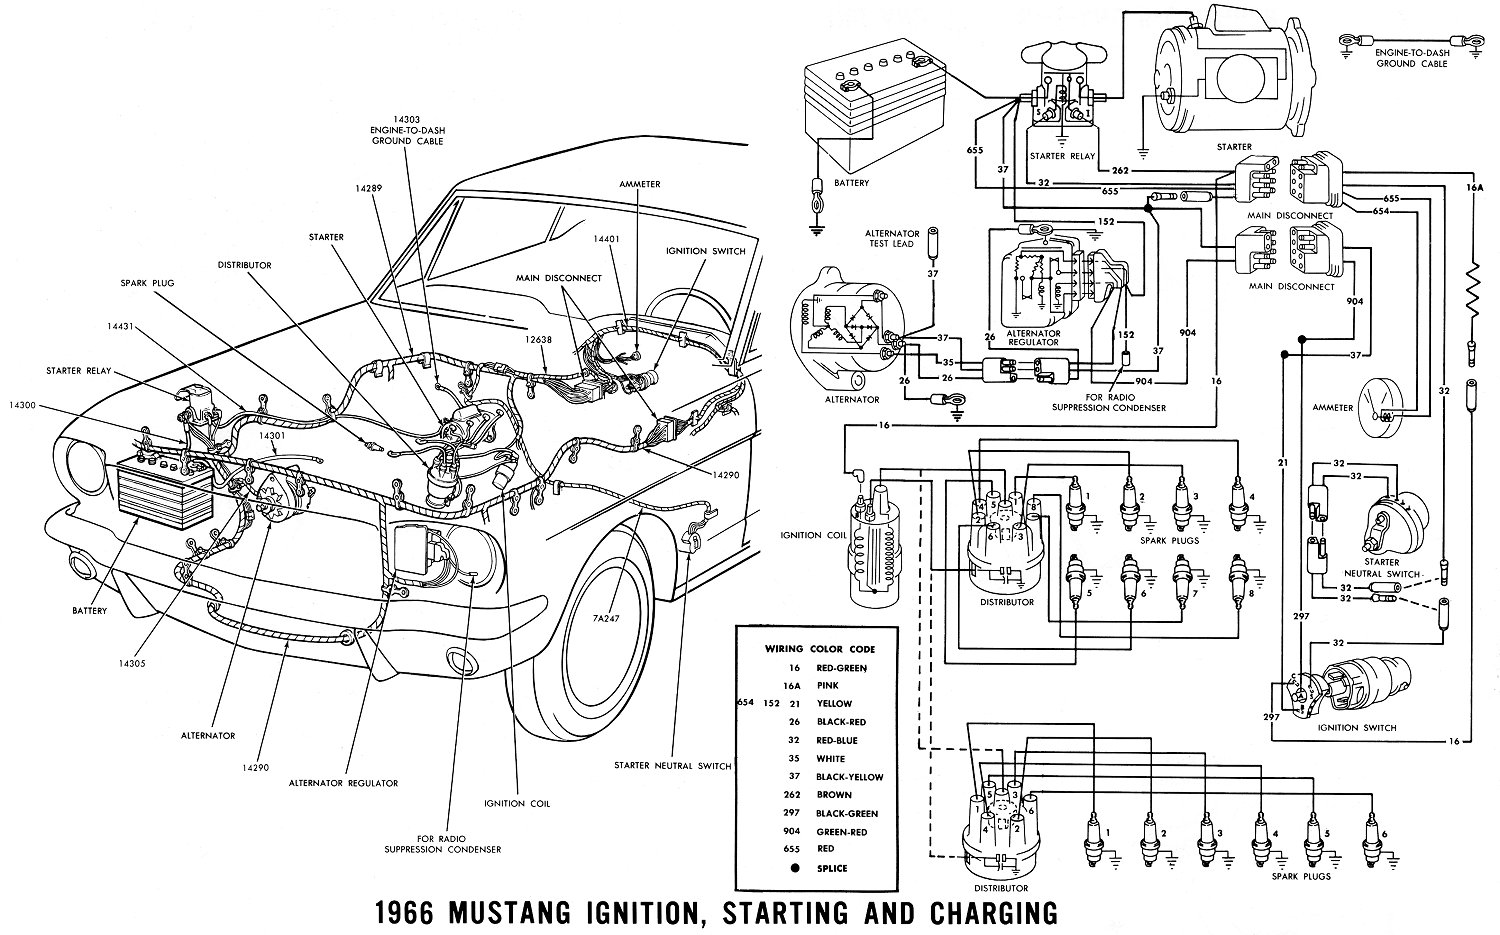 2011 04 01 archive on 2003 buick lesabre rear suspension diagram html